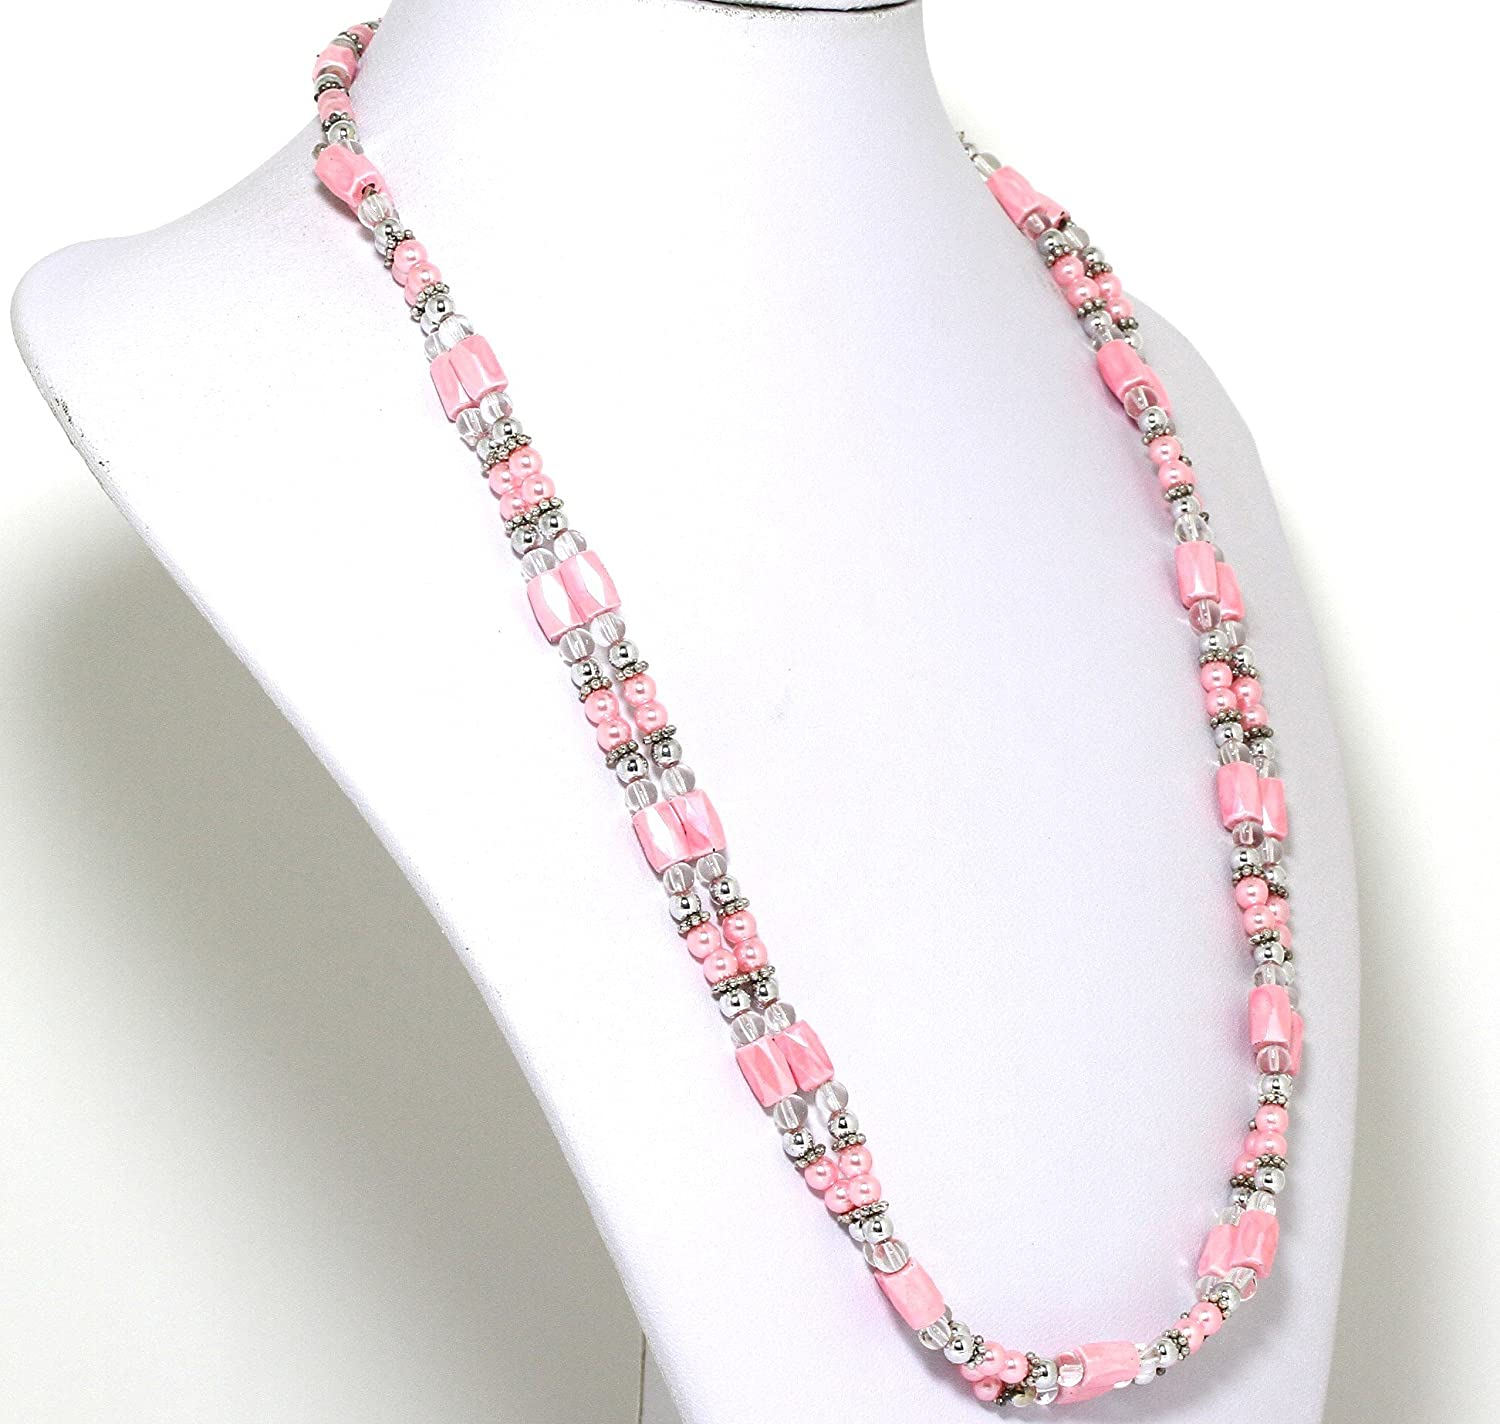 AnsonsImages 37 Inches Long Magnetic Wrap Necklace Choker Bracelet Anklet Lariat Pink